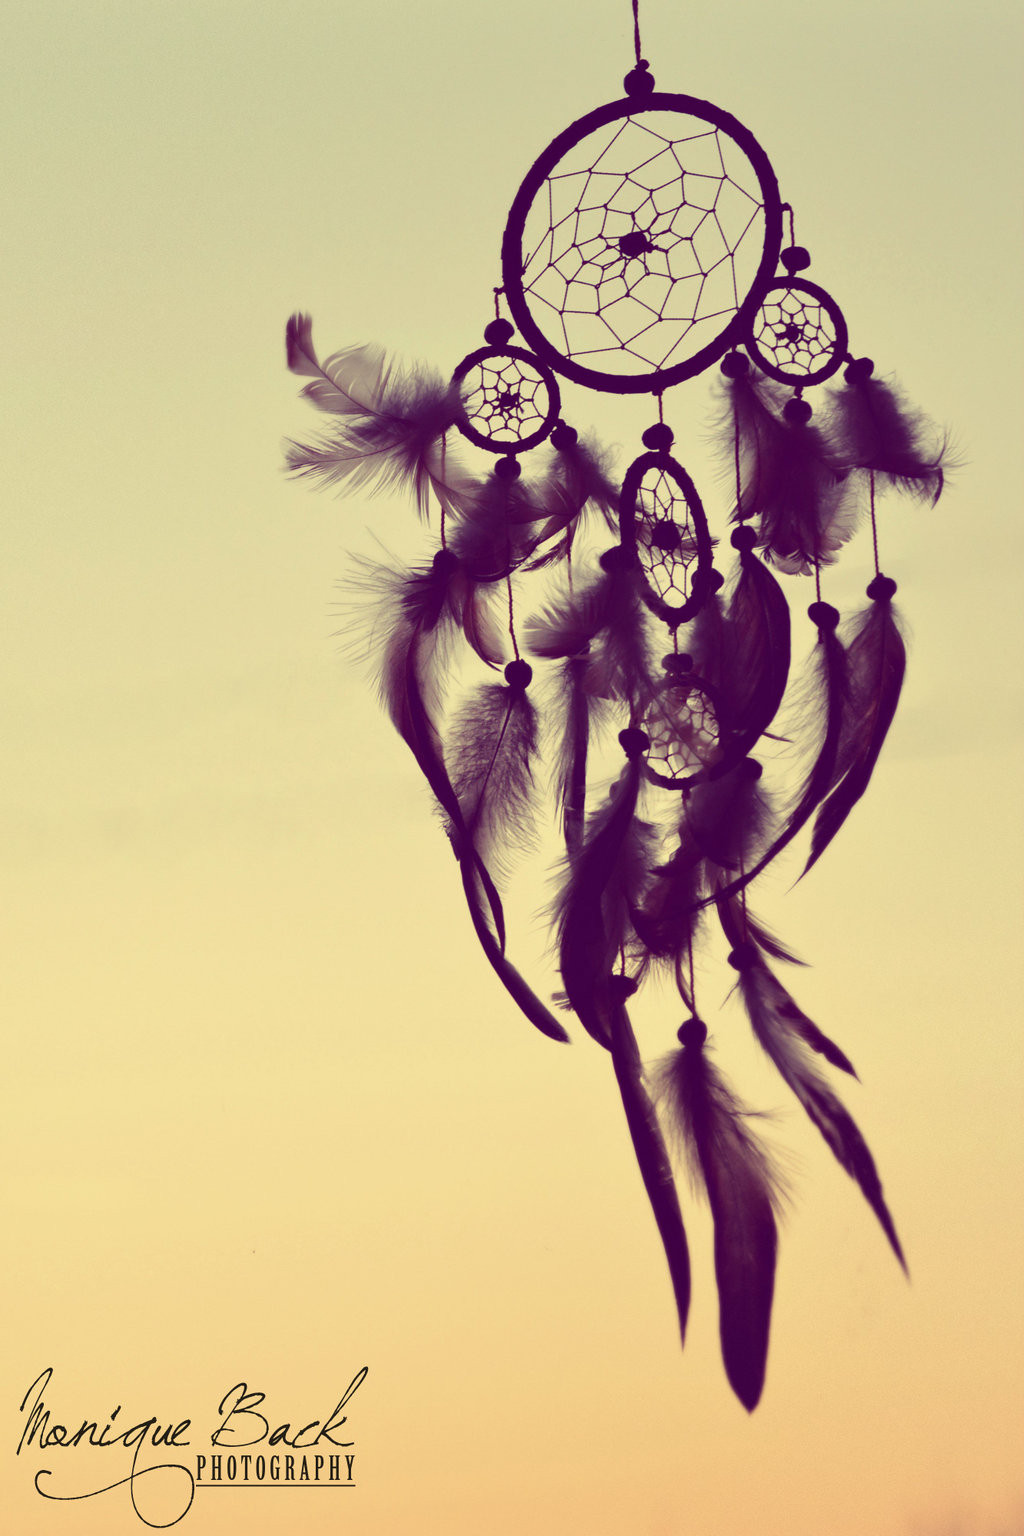 Free Download Dreamcatcher Wallpaper Tumblr Hd Dreamcatcher